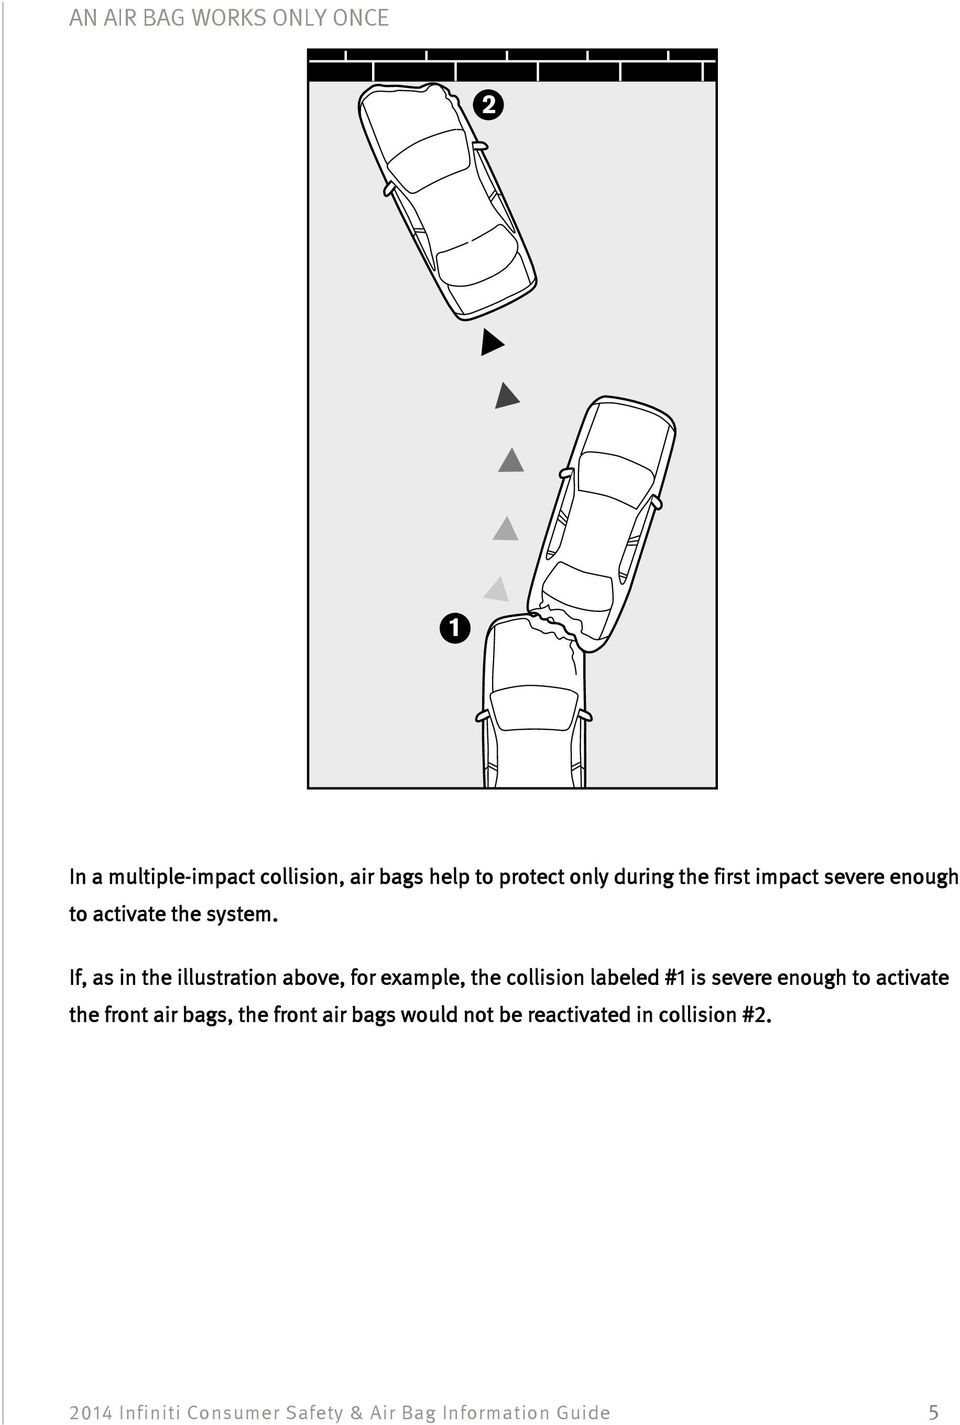 If, as in the illustration above, for example, the collision labeled #1 is severe enough to